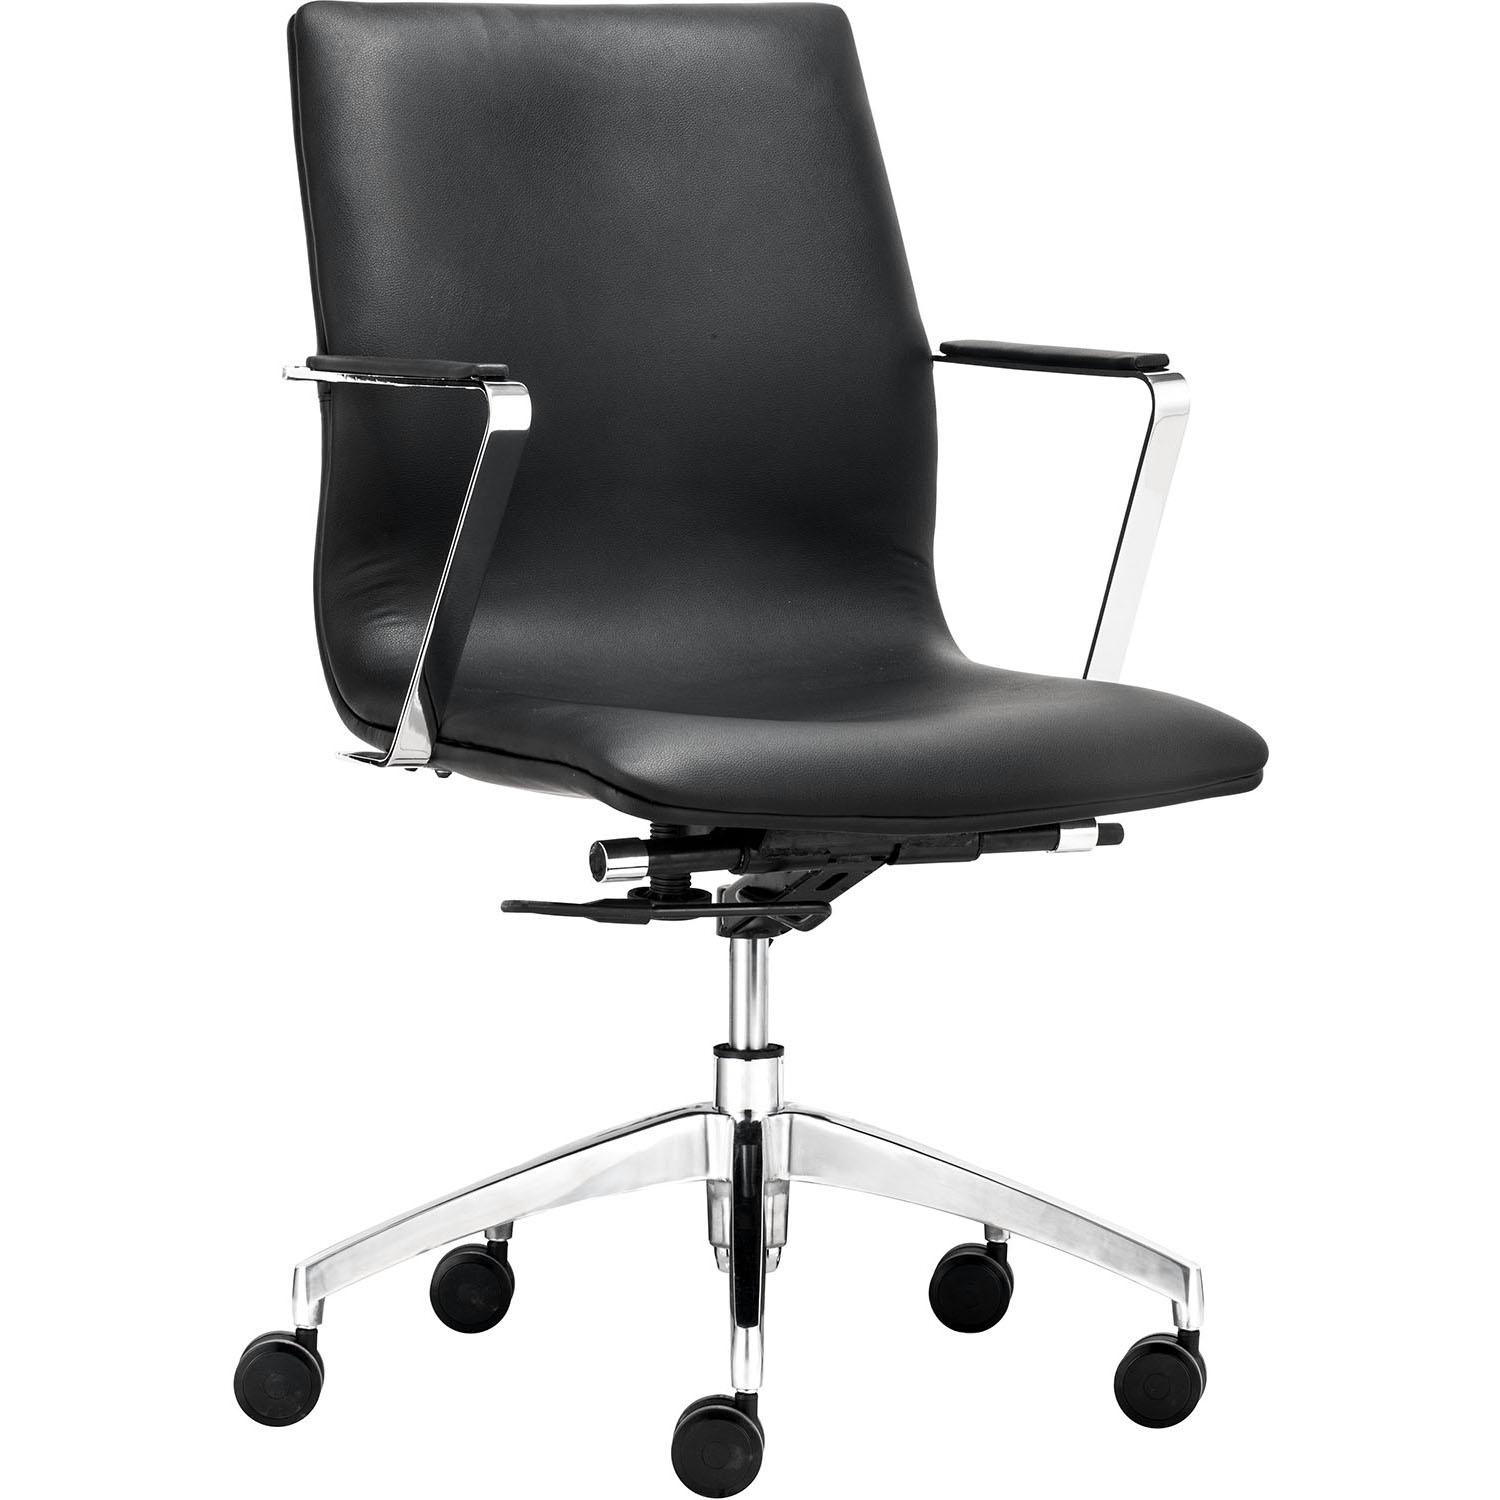 Herald Low Back Adjustable Rolling Office Armchair 206150, 206151, 206152